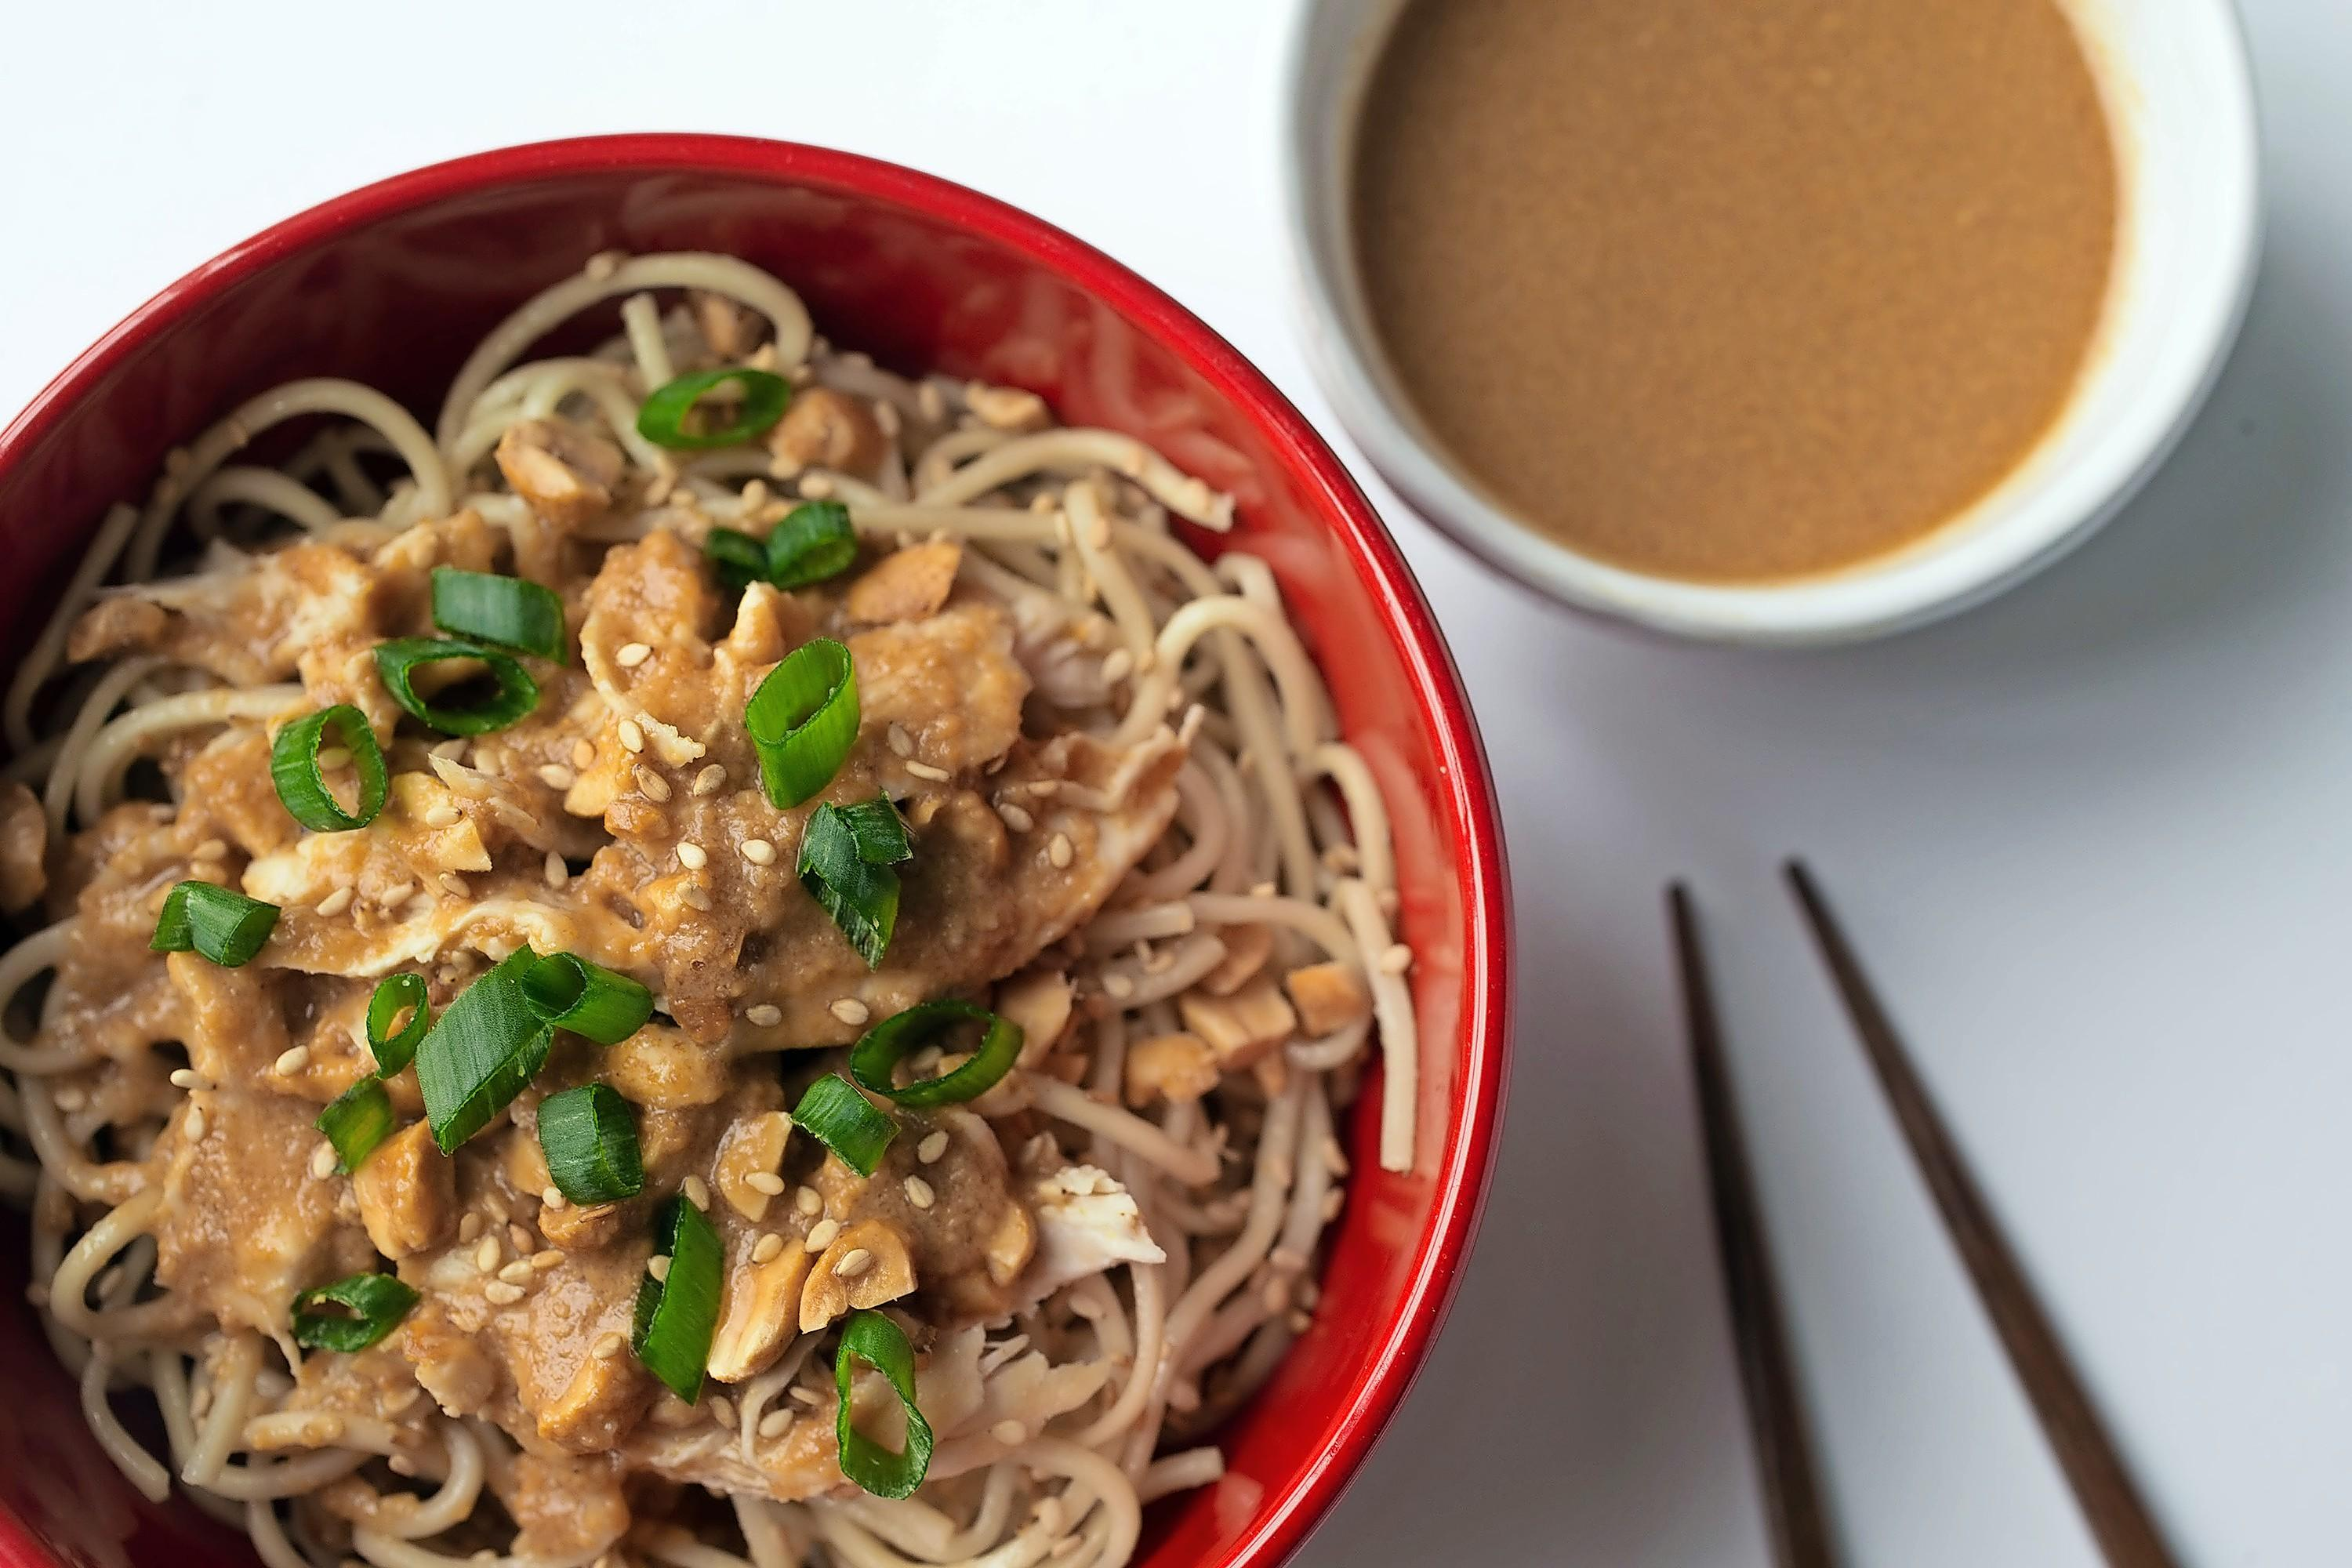 Austin Steele/St. Louis Post-Dispatch/TNS Cold noodles with chicken and peanuts garnished with scallions